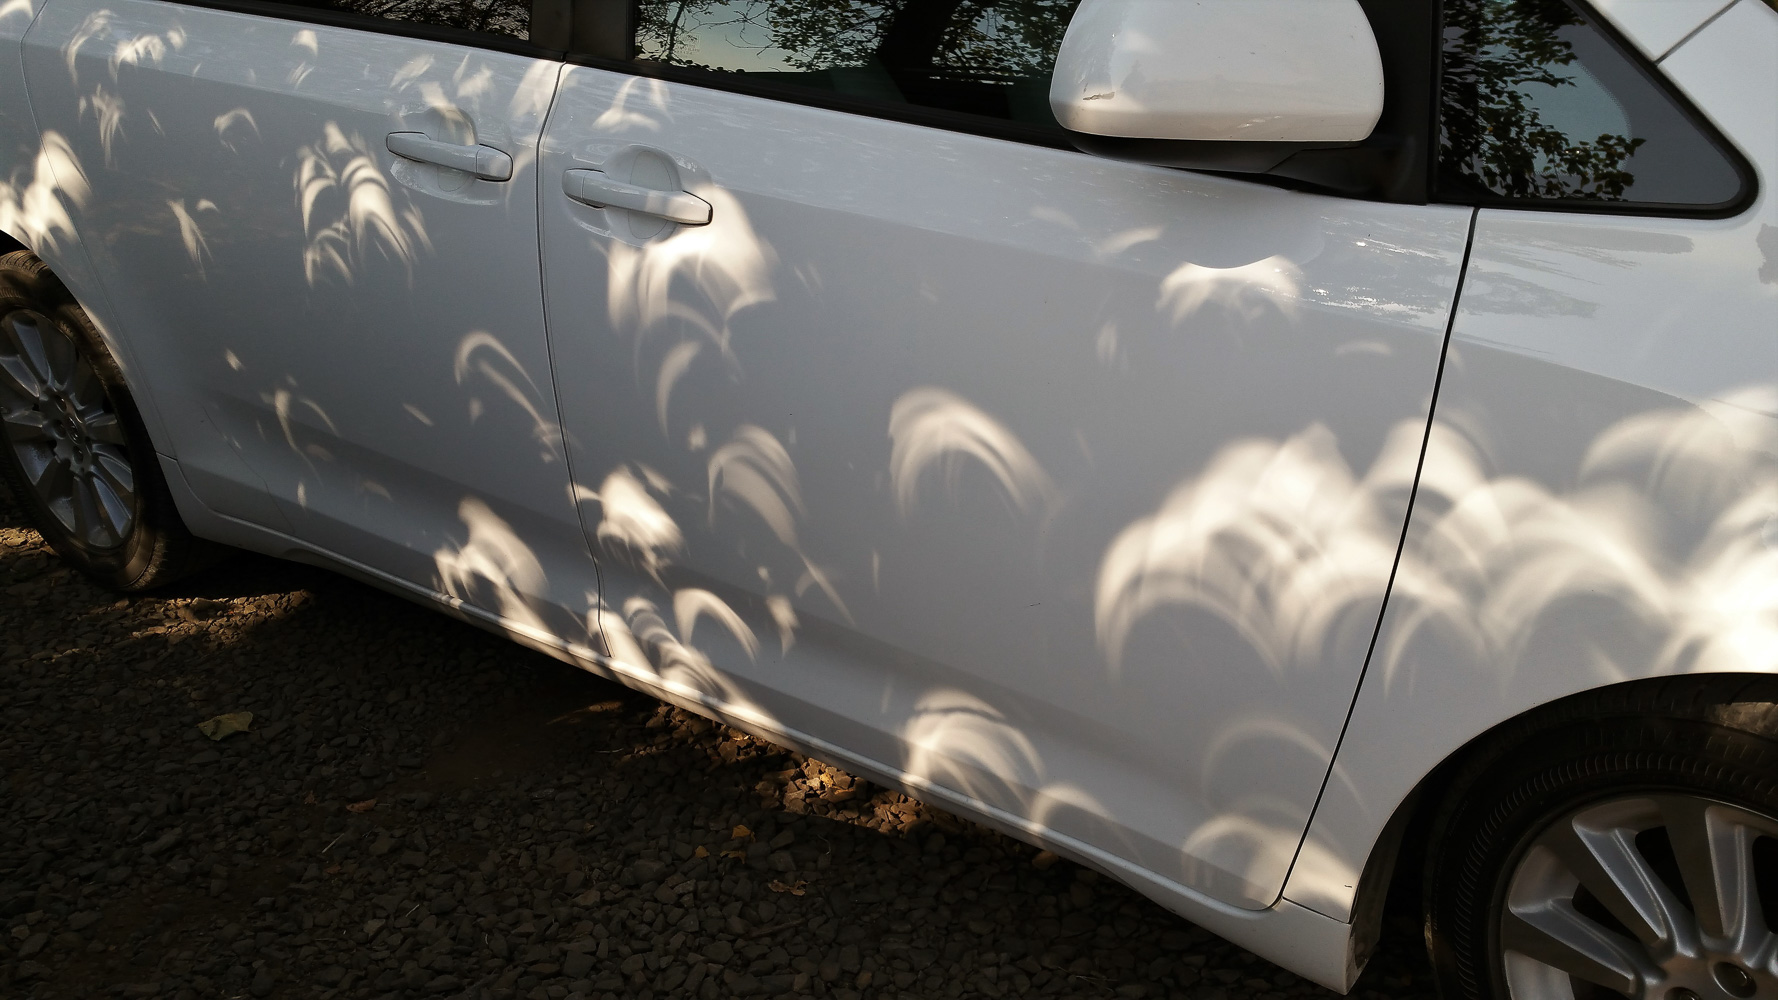 When there is an eclipse the shadows under a tree will show you the current state. Were very close to totality at this point.